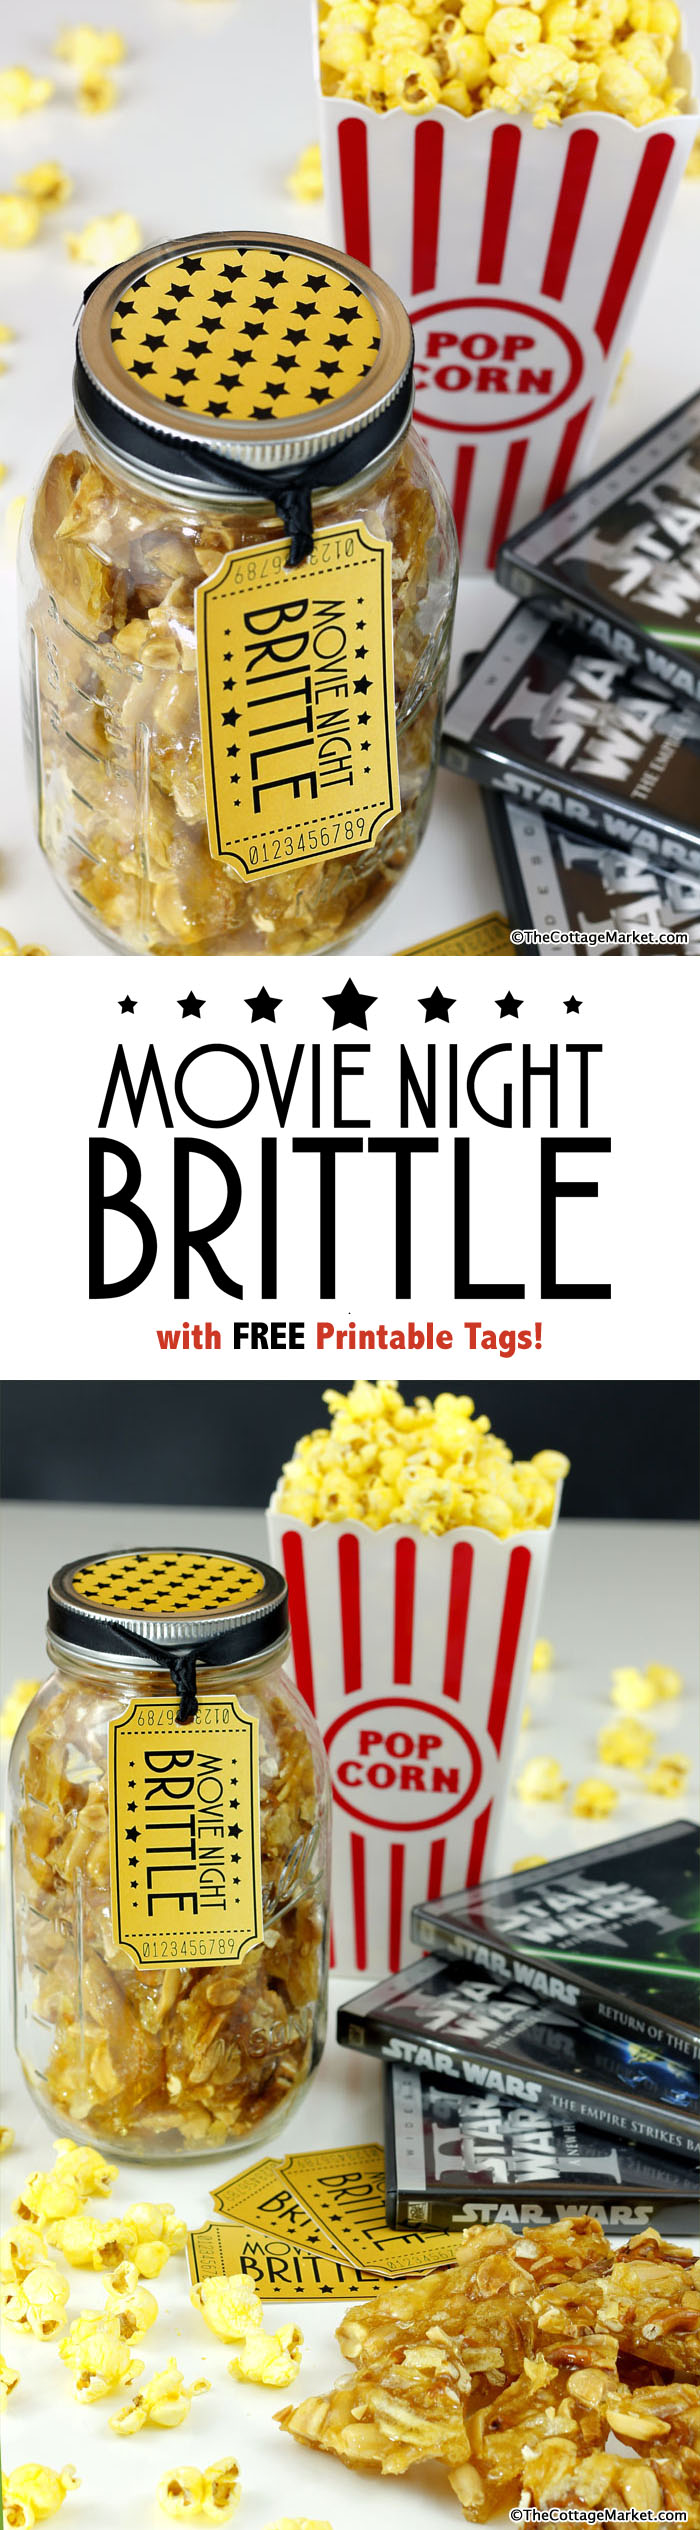 movienightbrittle-TOWER